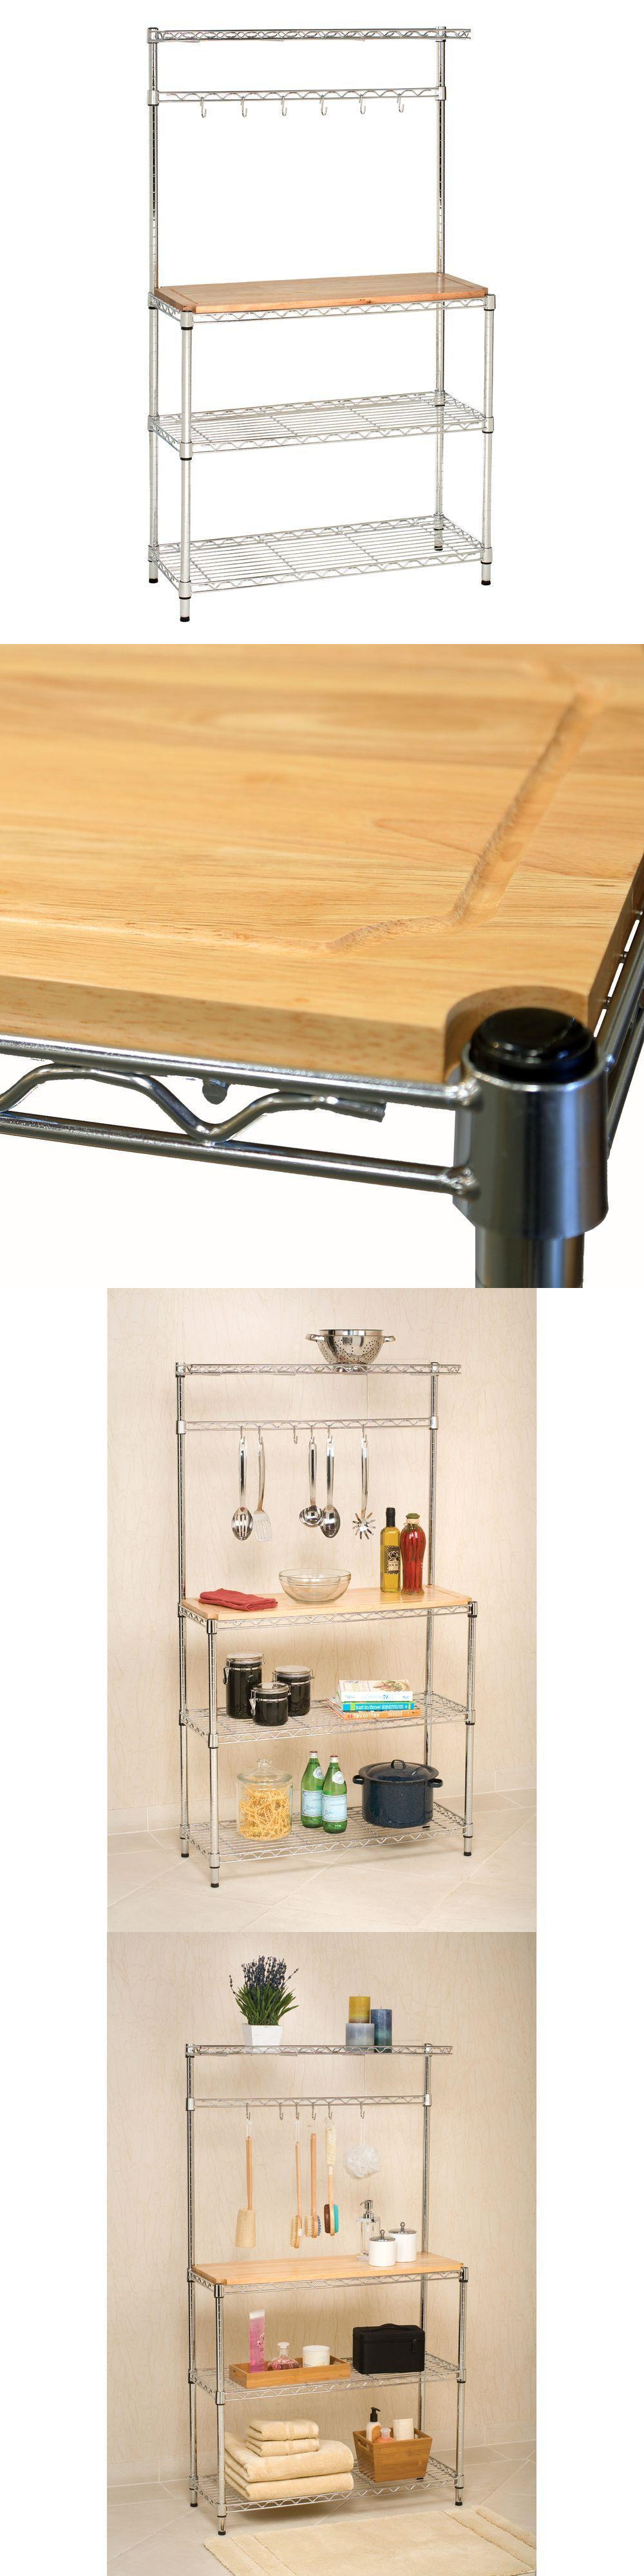 perfect bakers shelves wooden to a iron addition for rack with your and kitchen drawers